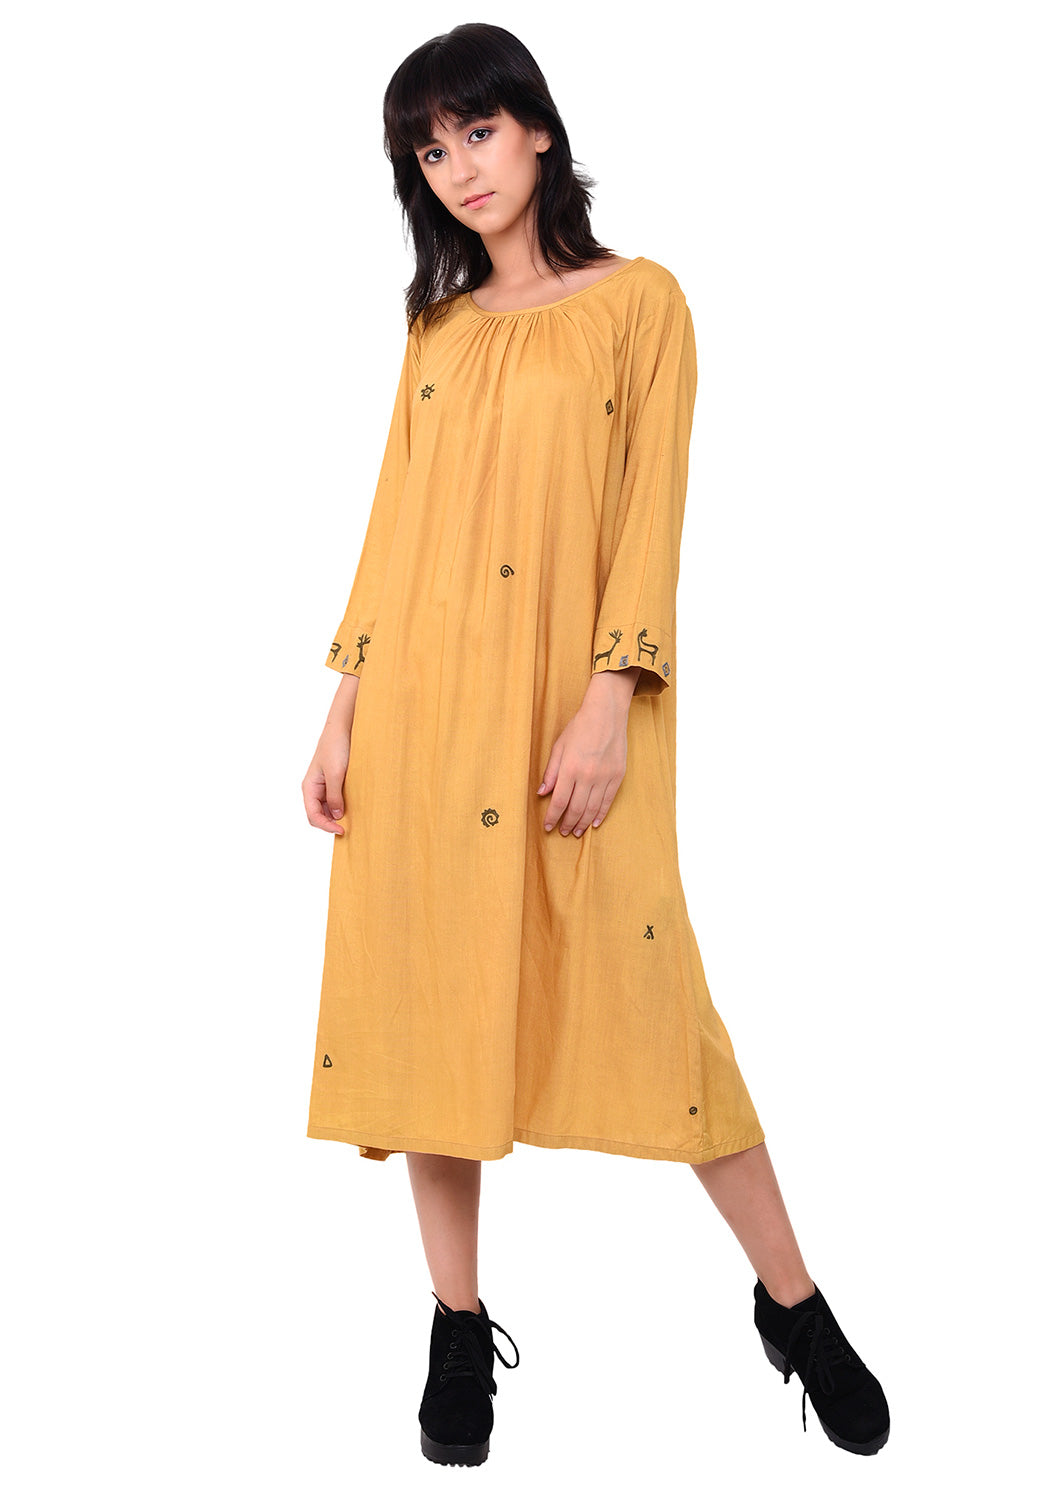 Urban Symbol Embroidered Shift dress - Sunflower